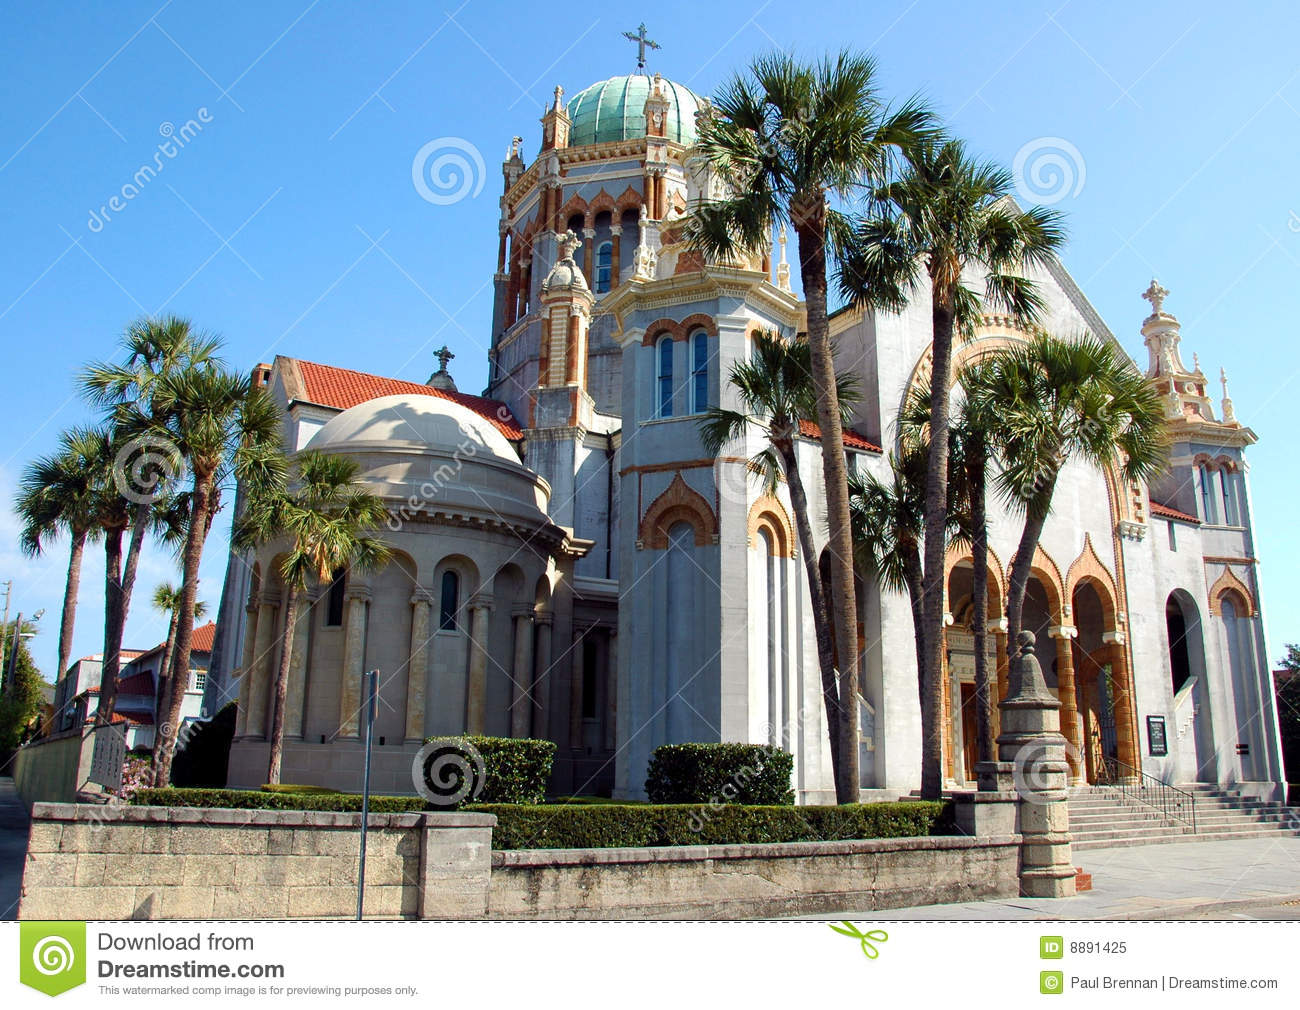 a history of catholic religion in saint augustine florida Religious sites of a variety of denominations can be found in st augustine, and many come with a lengthy history of the early settlers who founded them some came here in hopes of a better life, looking to establish their own beliefs freely.